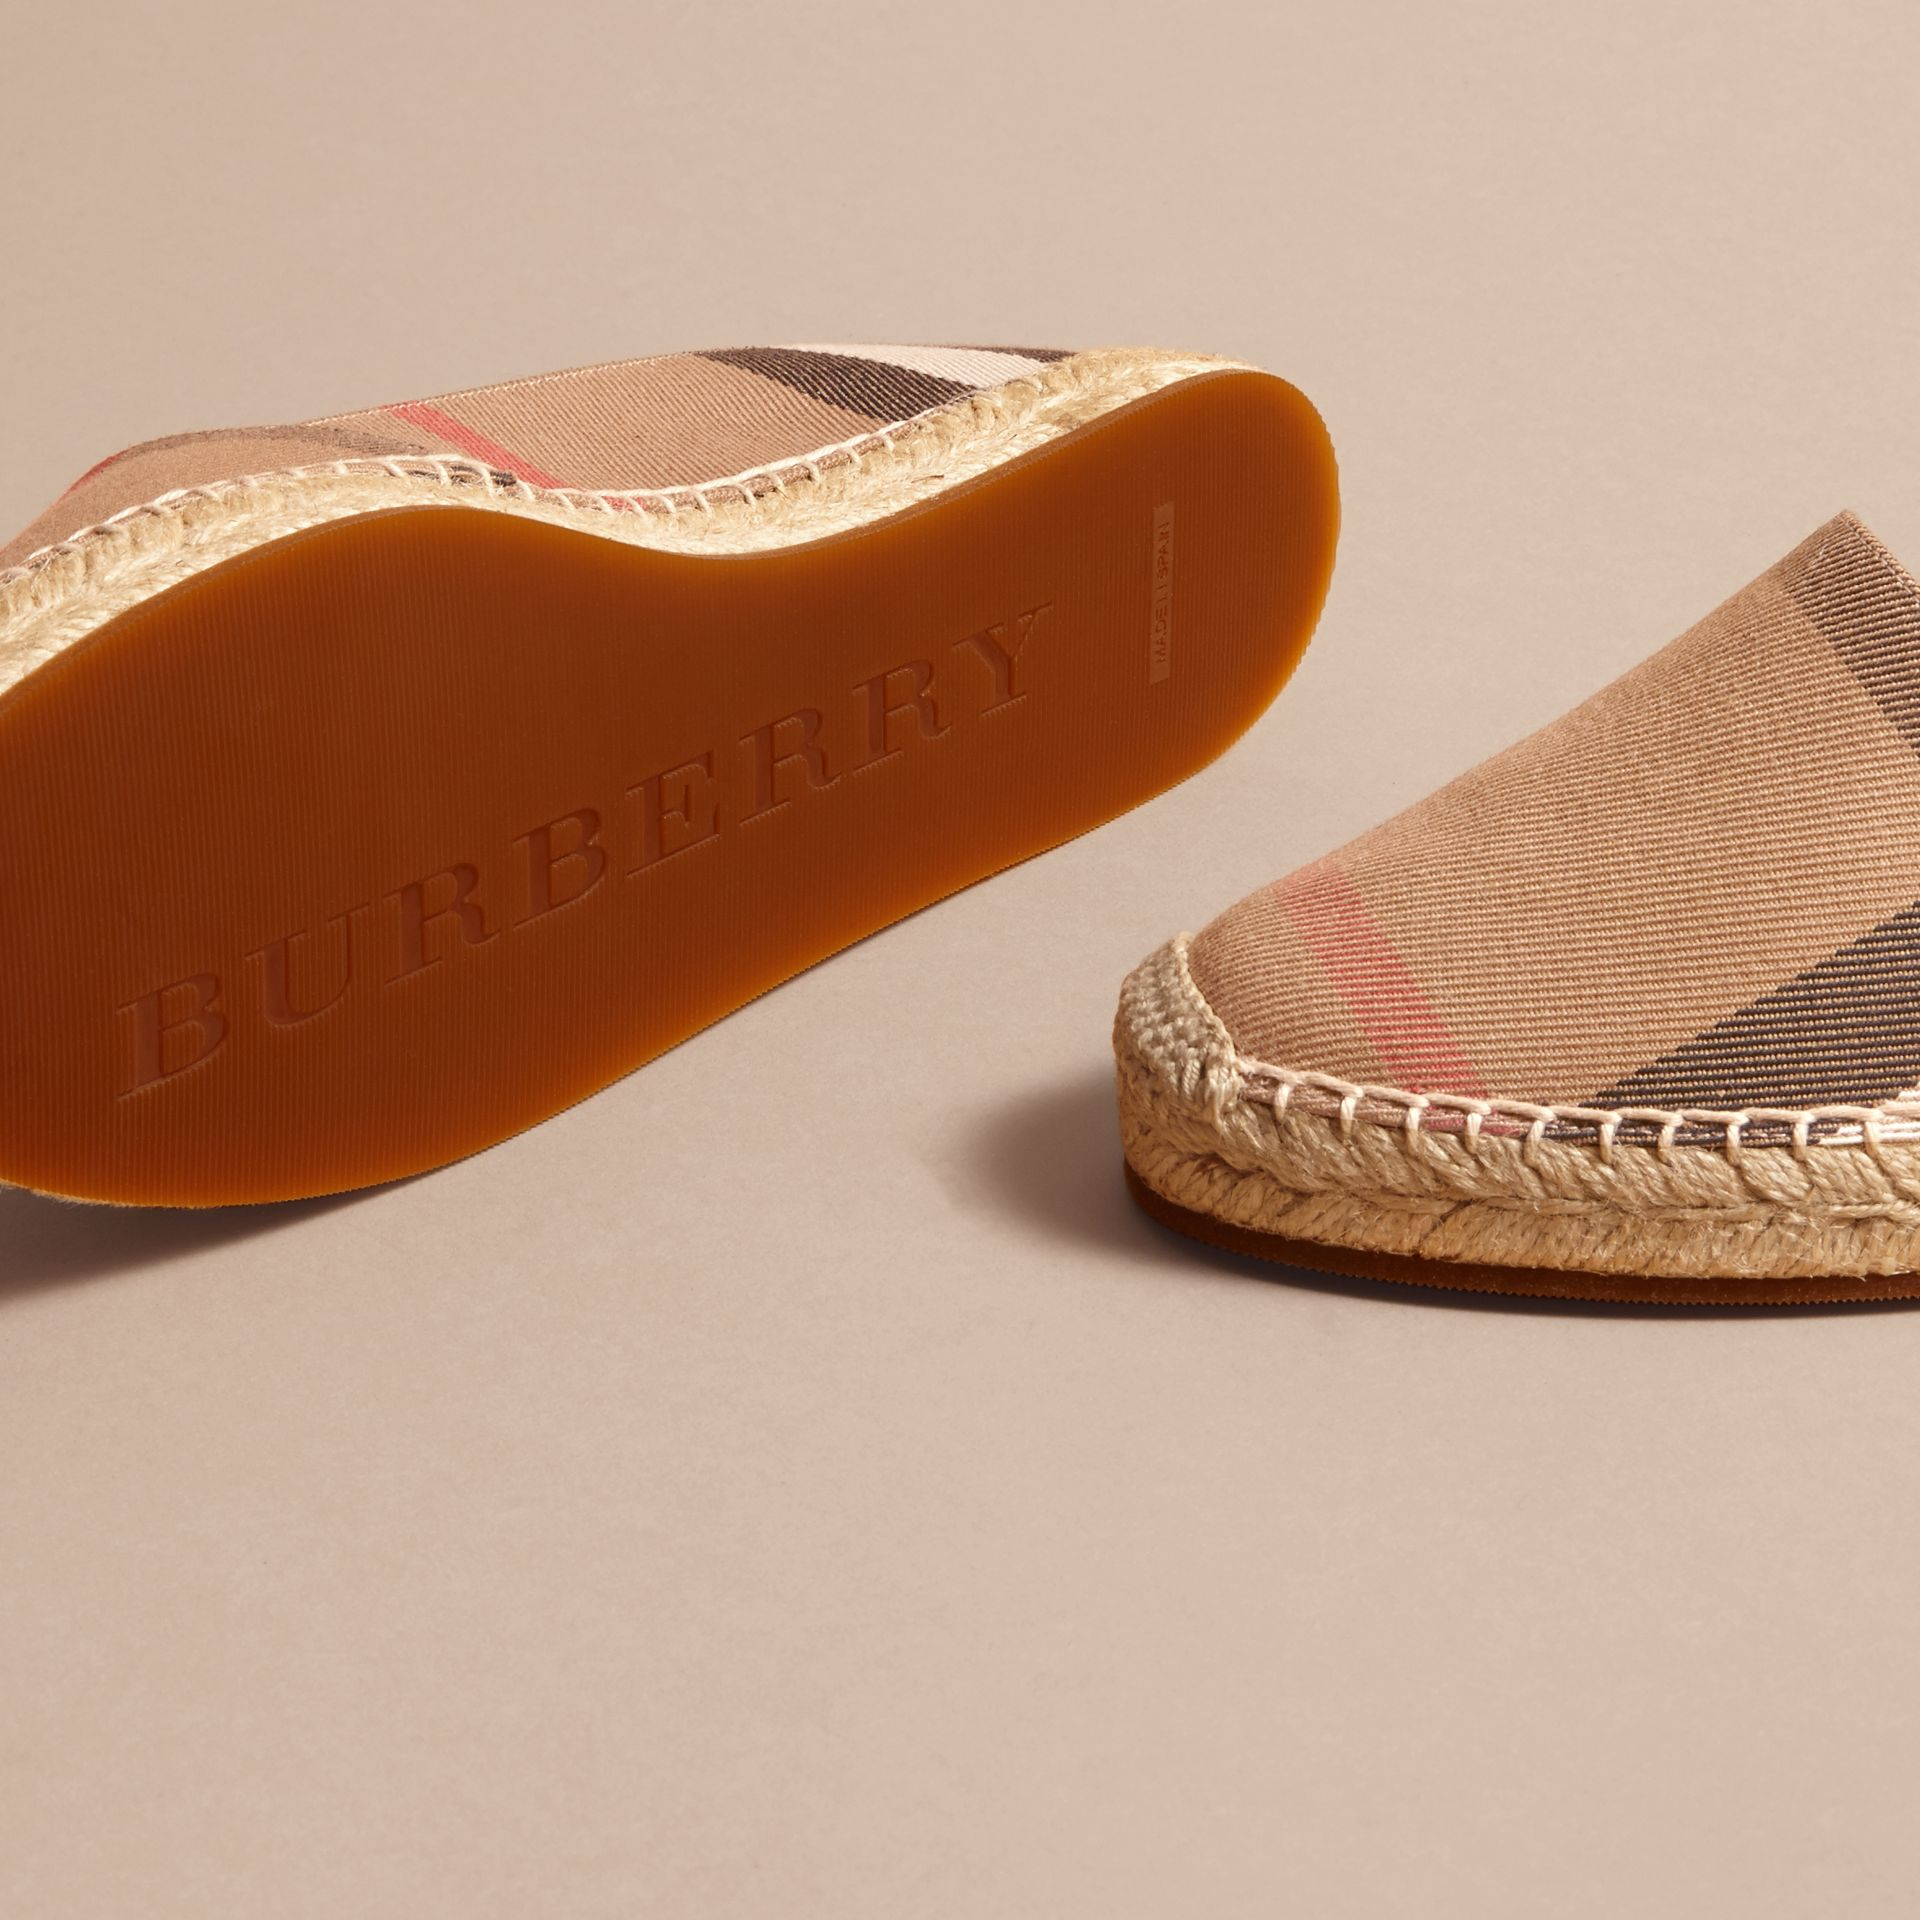 Leather Trim Canvas Check Espadrilles in Classic - Women | Burberry Singapore - gallery image 3